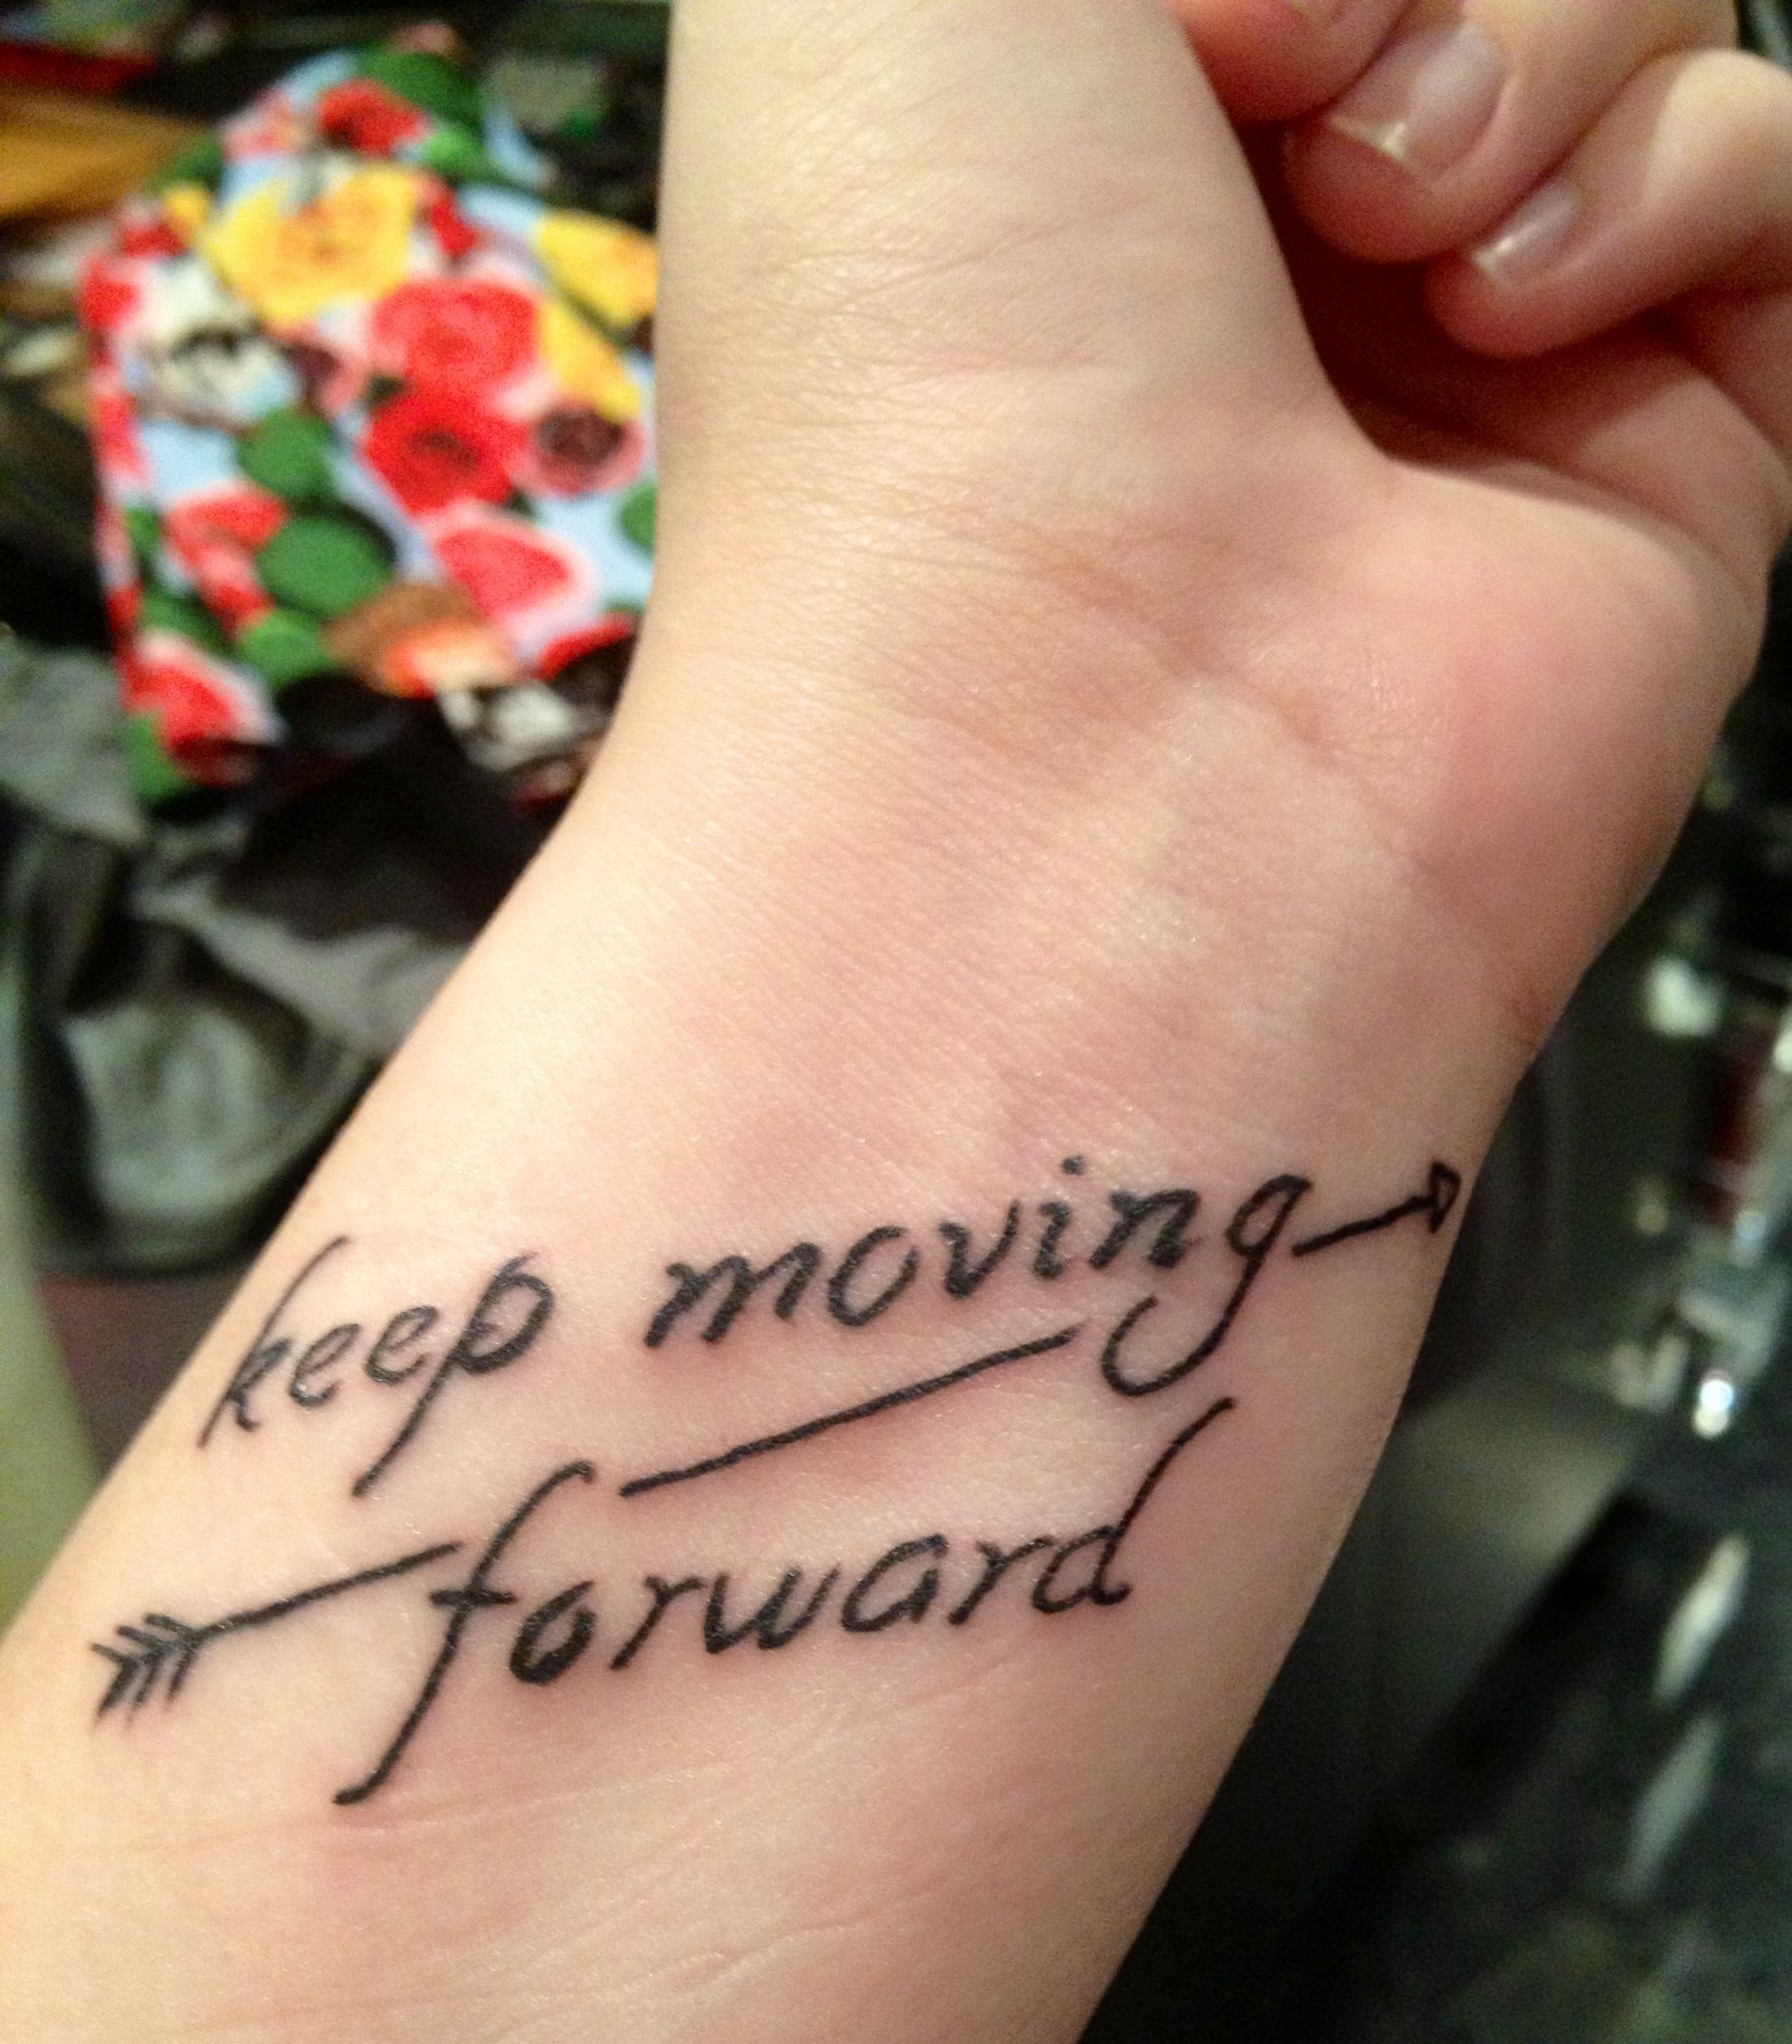 My newest tattoo!!!! I LOVE IT!!!! It helps to remind me ...